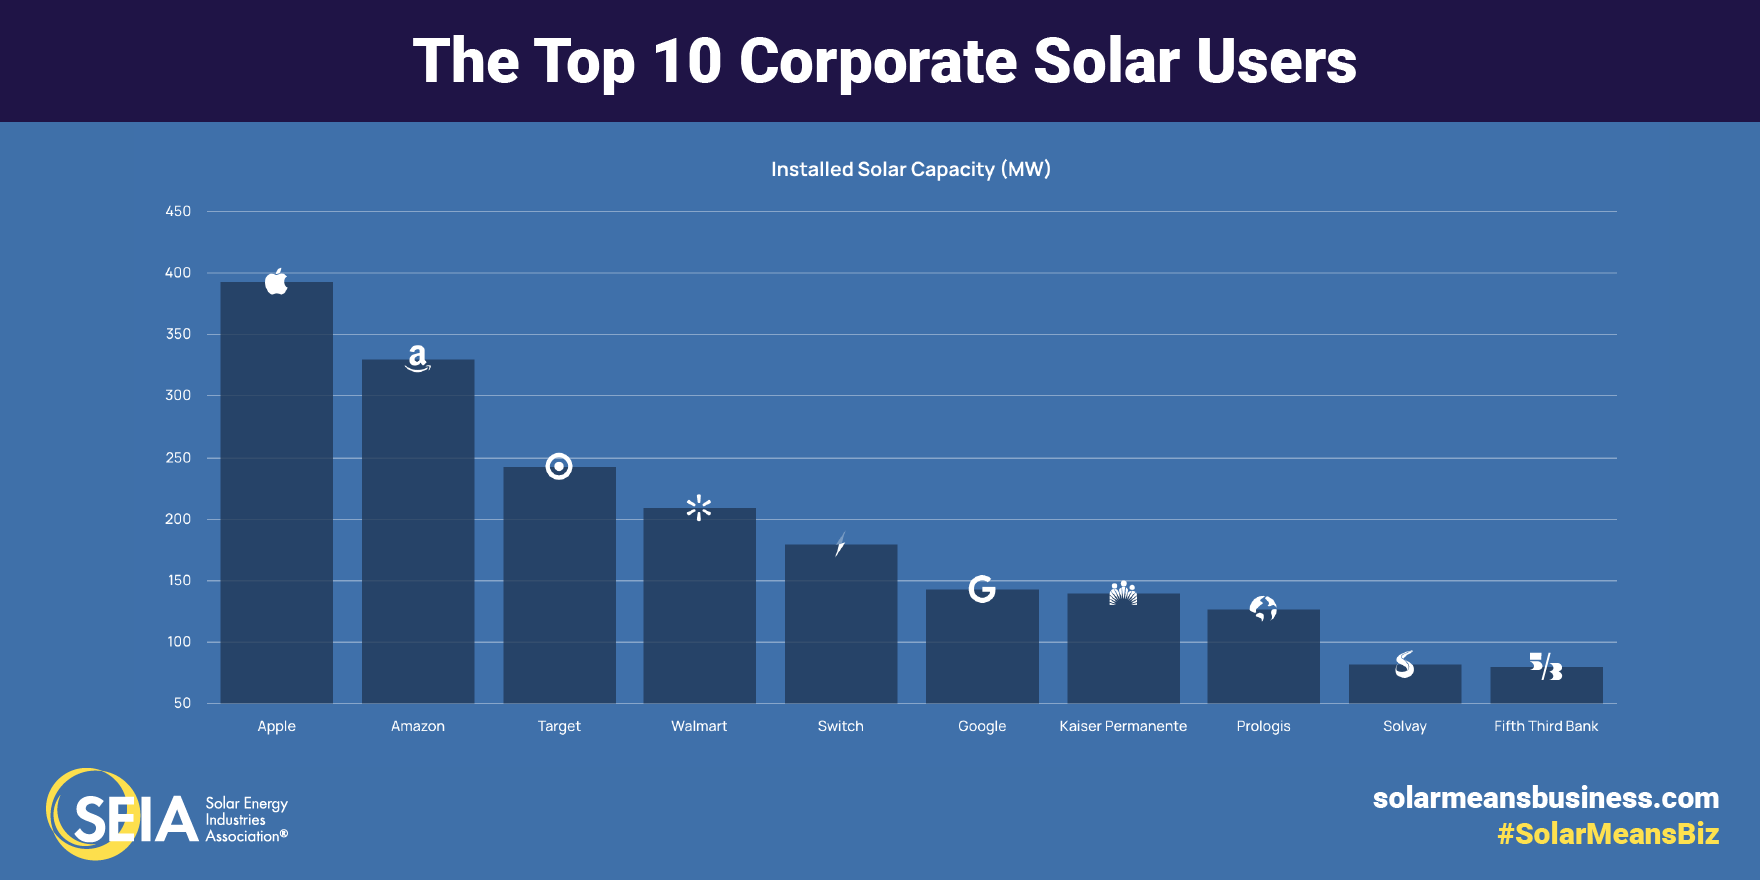 Tech giant Apple now stands as the leading procurer of corporate solar in the US with nearly 400MW of total installed capacity. Image: SEIA